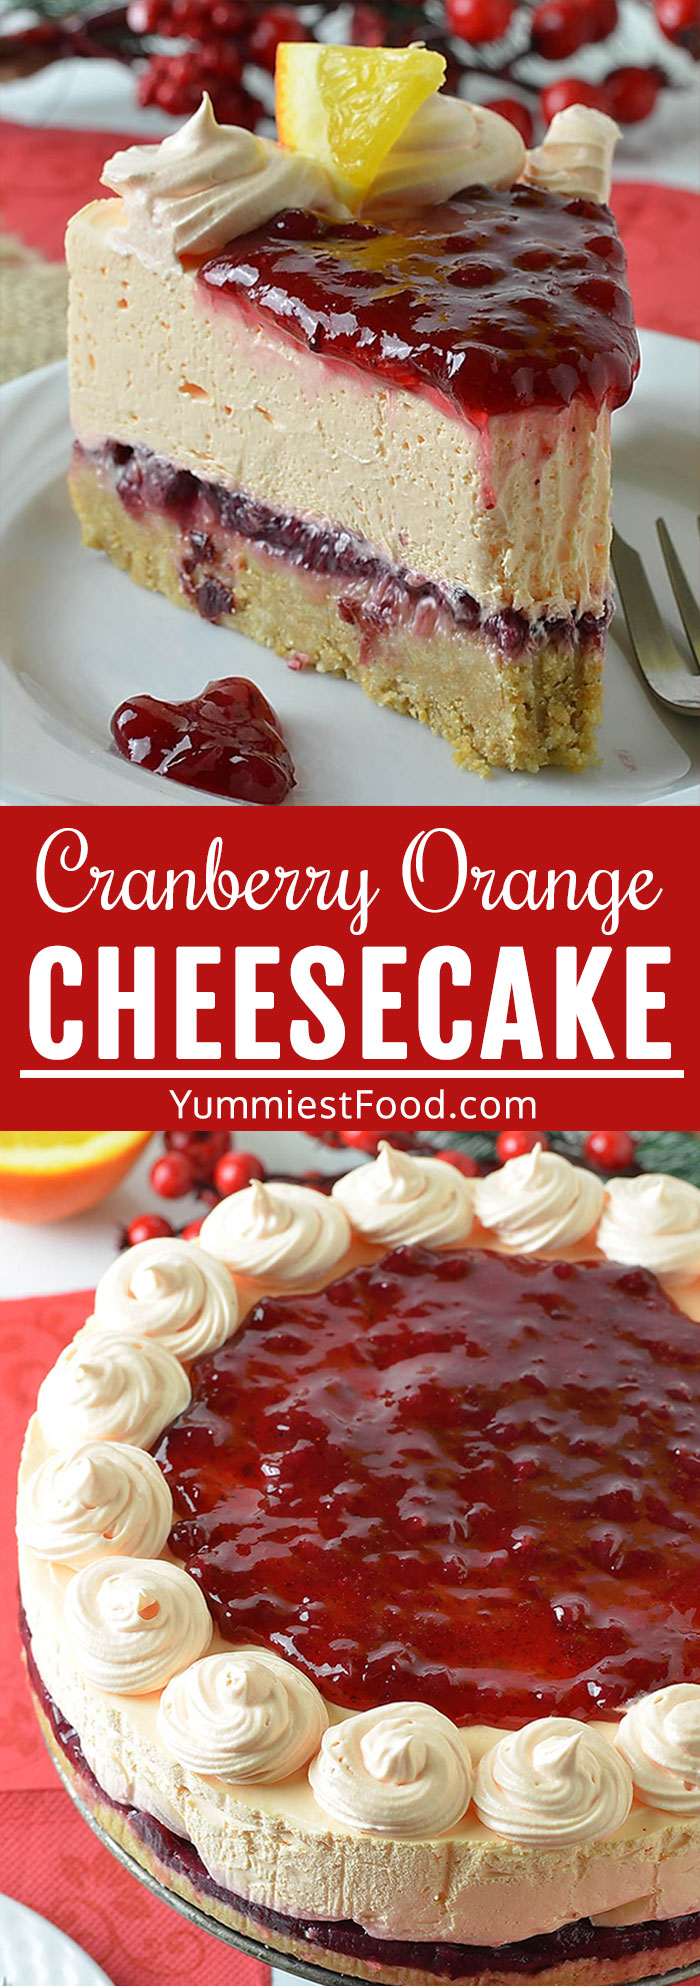 Cranberry Orange Cheesecake is incredibly moist, flavorful and full of orange and cranberry in every bite! It's the perfect dessert for any holiday dinner table! #christmas #christmasrecipes #dessertrecipes #dessertfoodrecipes #easyrecipes #cheesecakerecipes #cheesecake